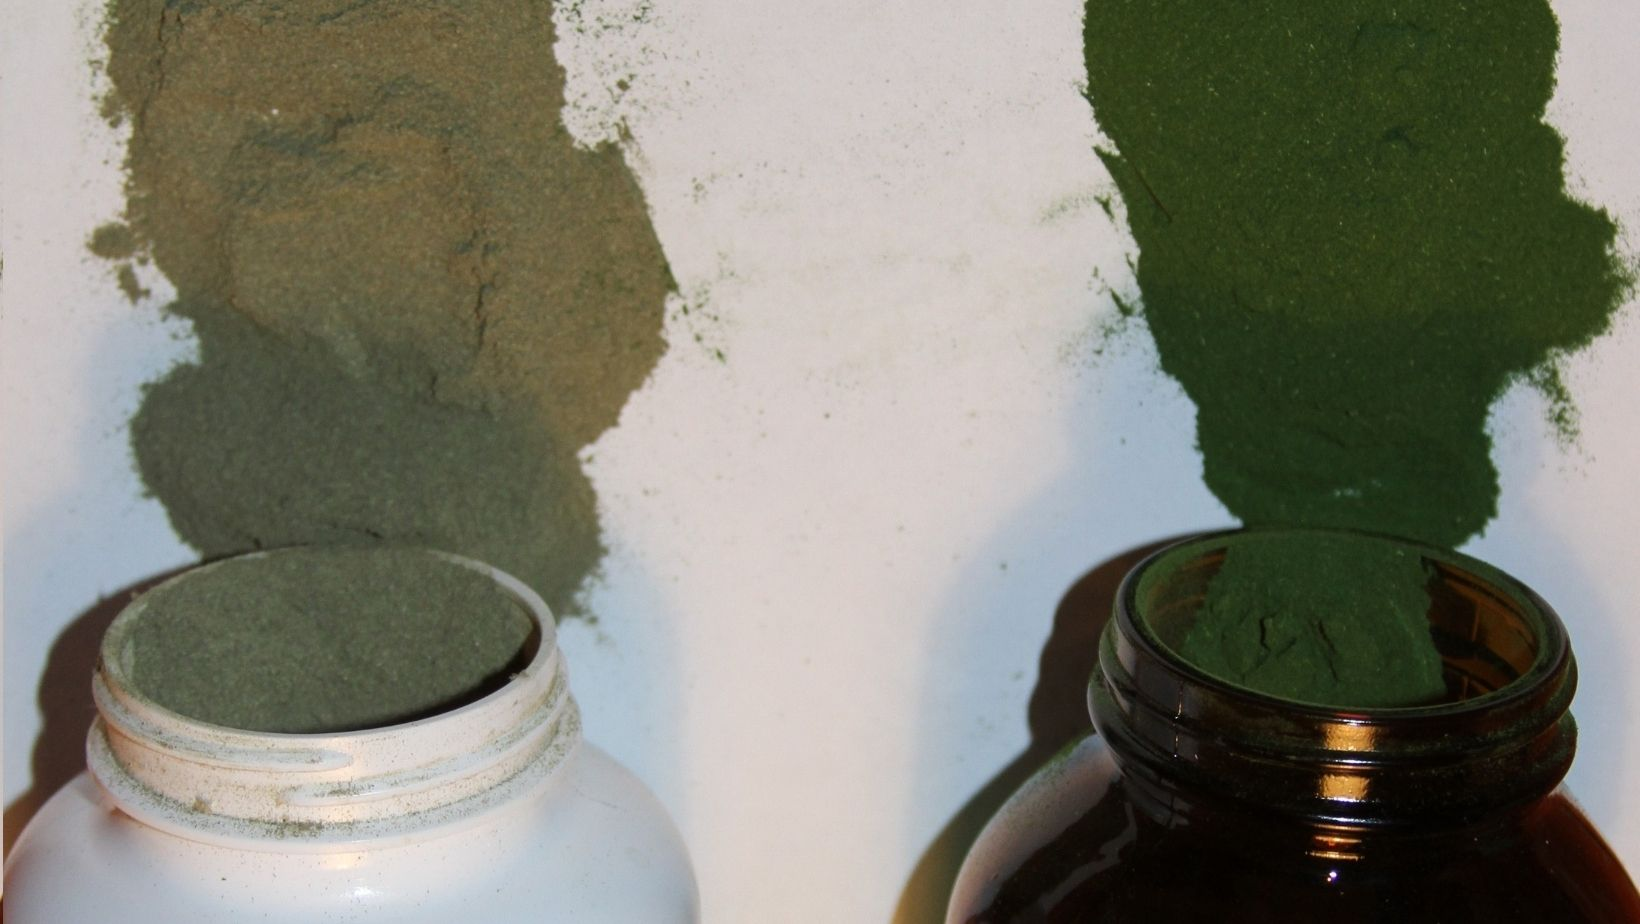 Notice the difference in freshness between PINES wheat grass stored in an amber glass bottle versus the leading competitor stored in plastic.